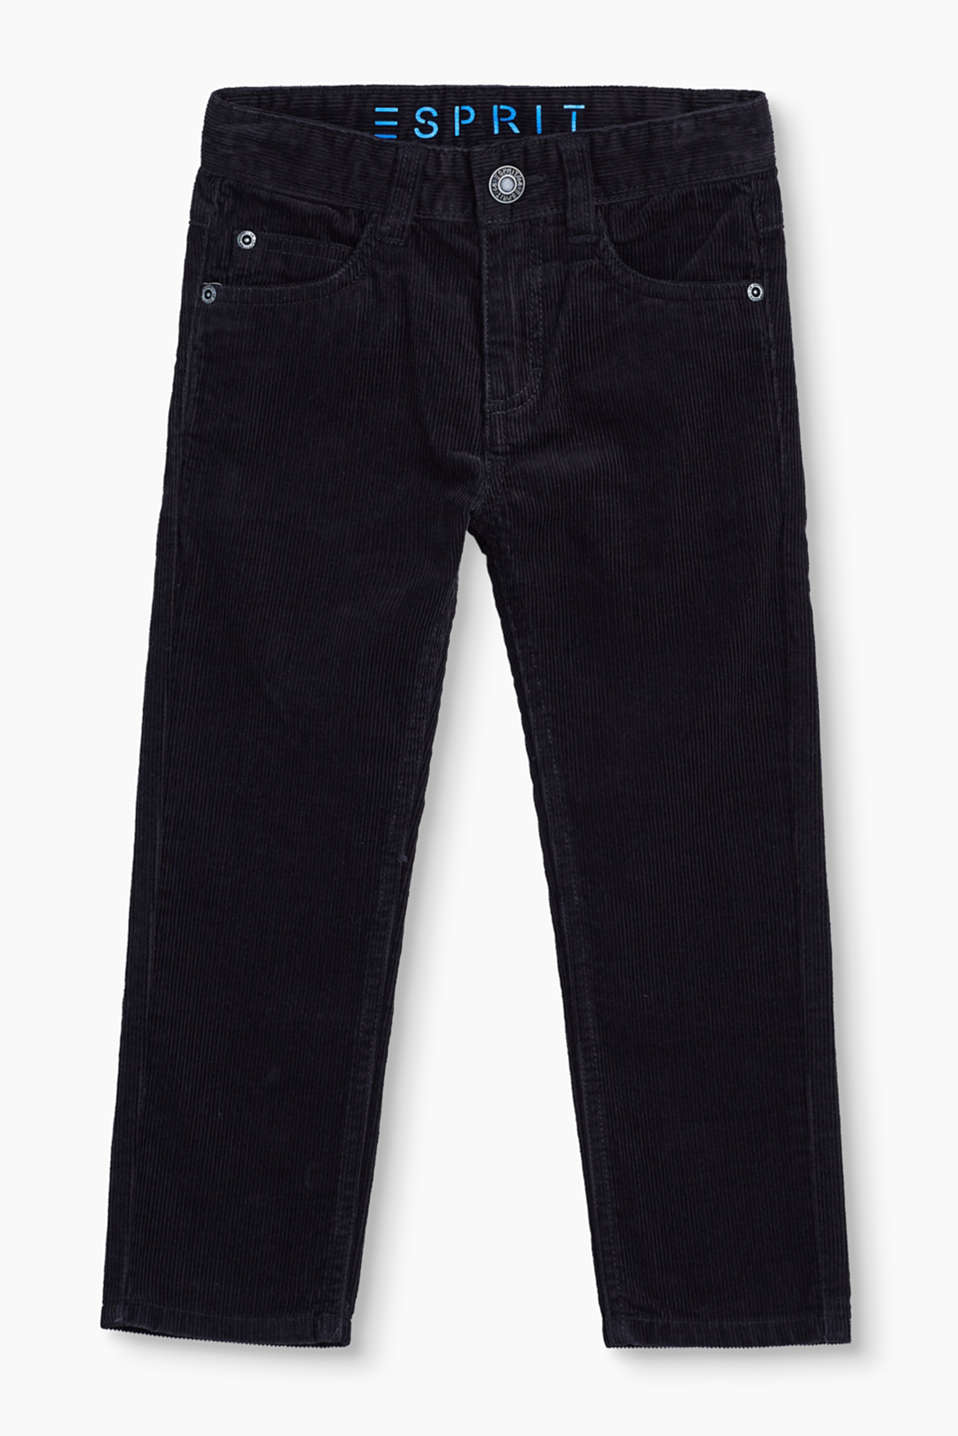 Esprit - Trousers in cotton cord + adjustable waist